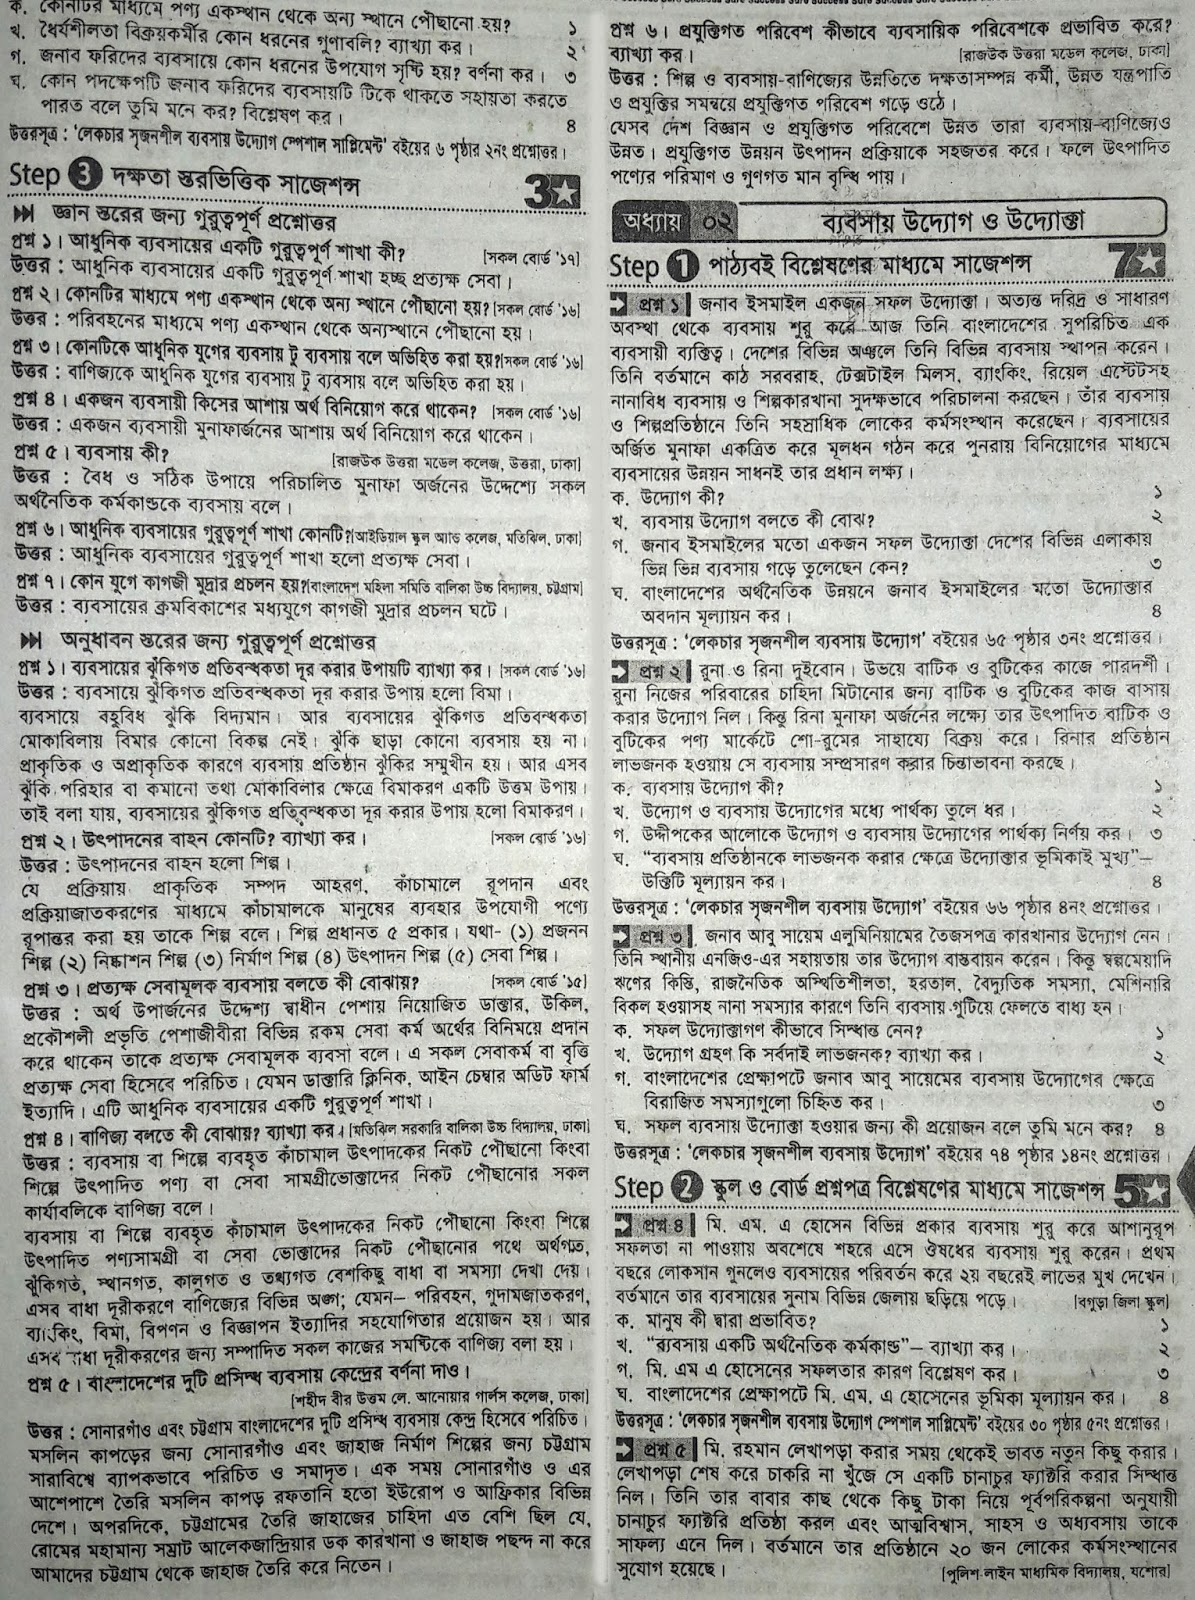 ssc Business Entrepreneurship suggestion, exam question paper, model question, mcq question, question pattern, preparation for dhaka board, all boards